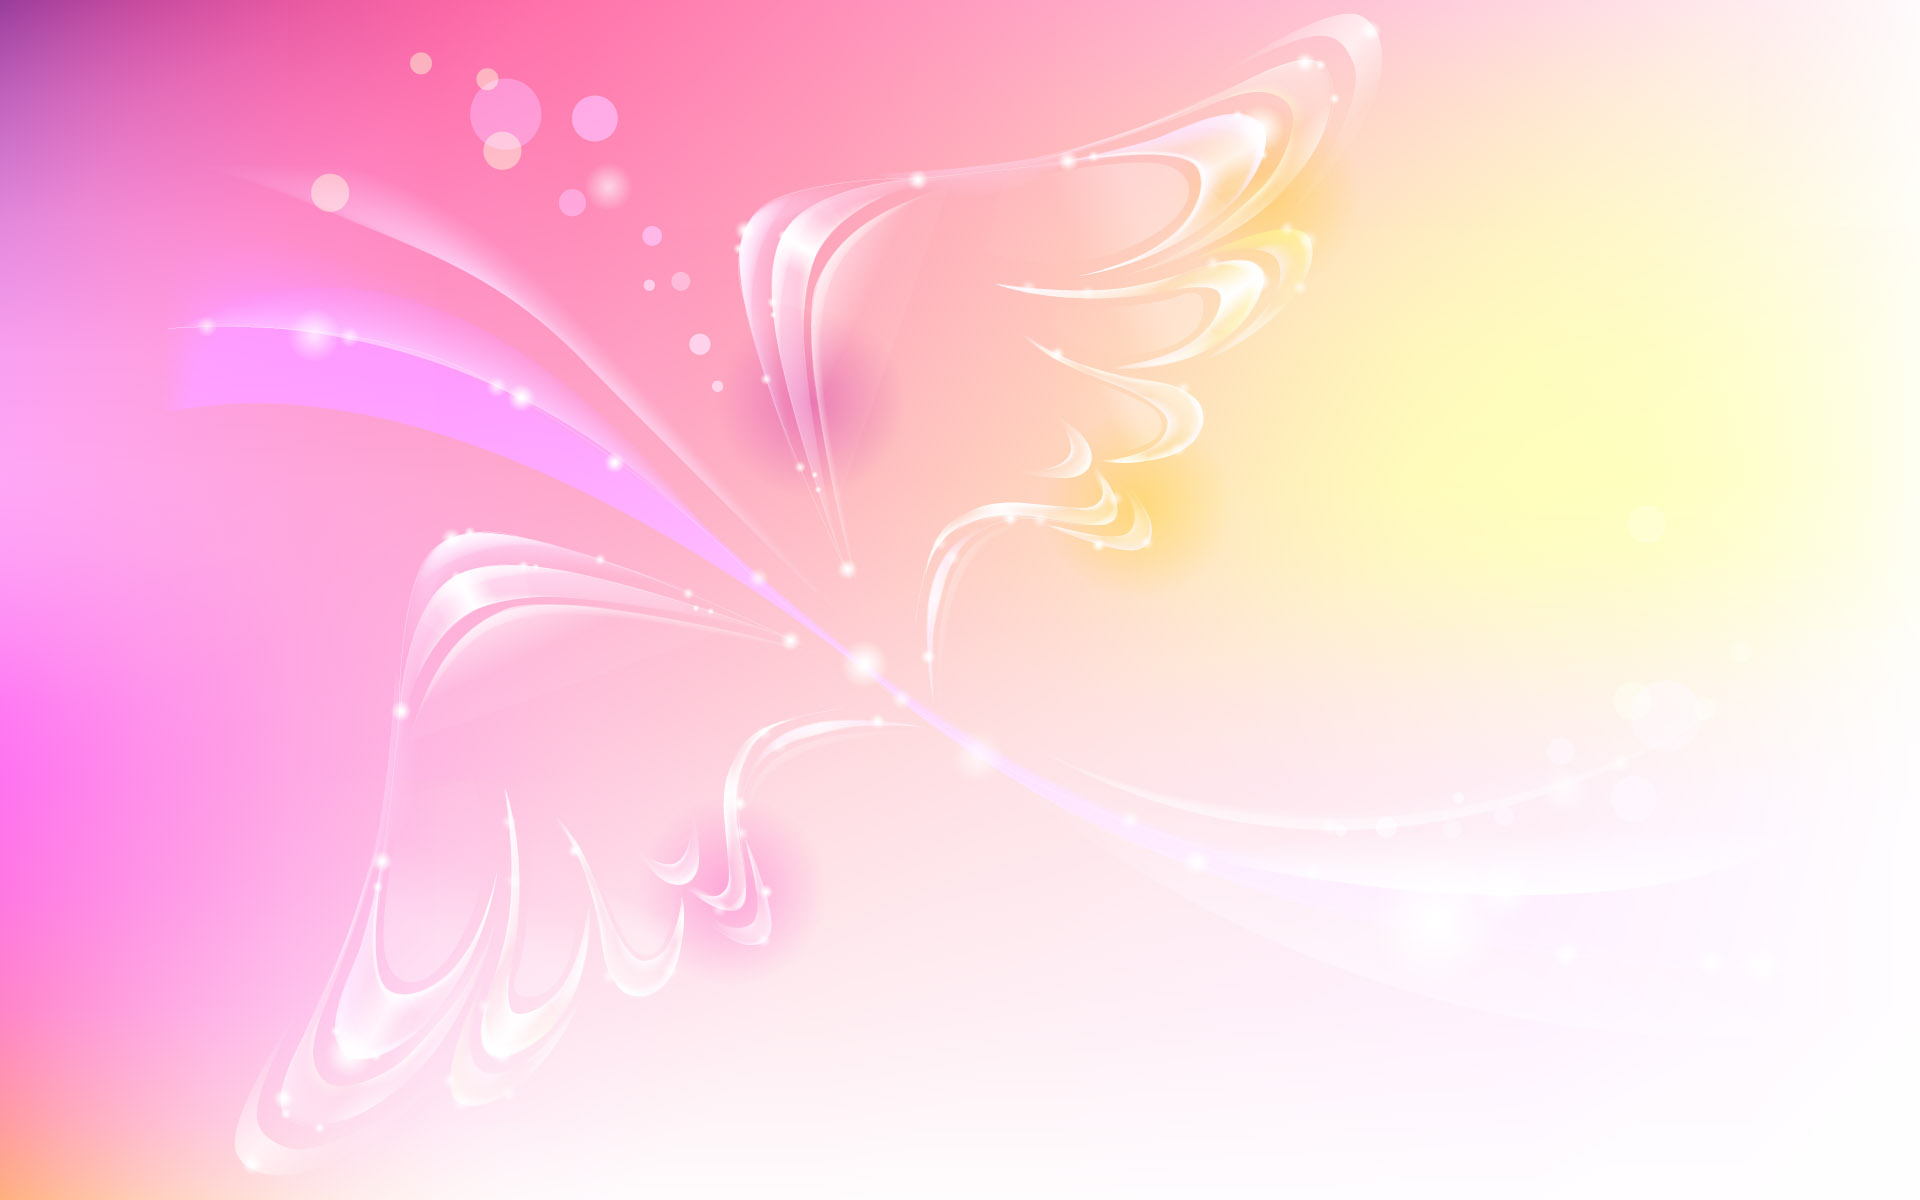 Colorful high-resolution background 24096